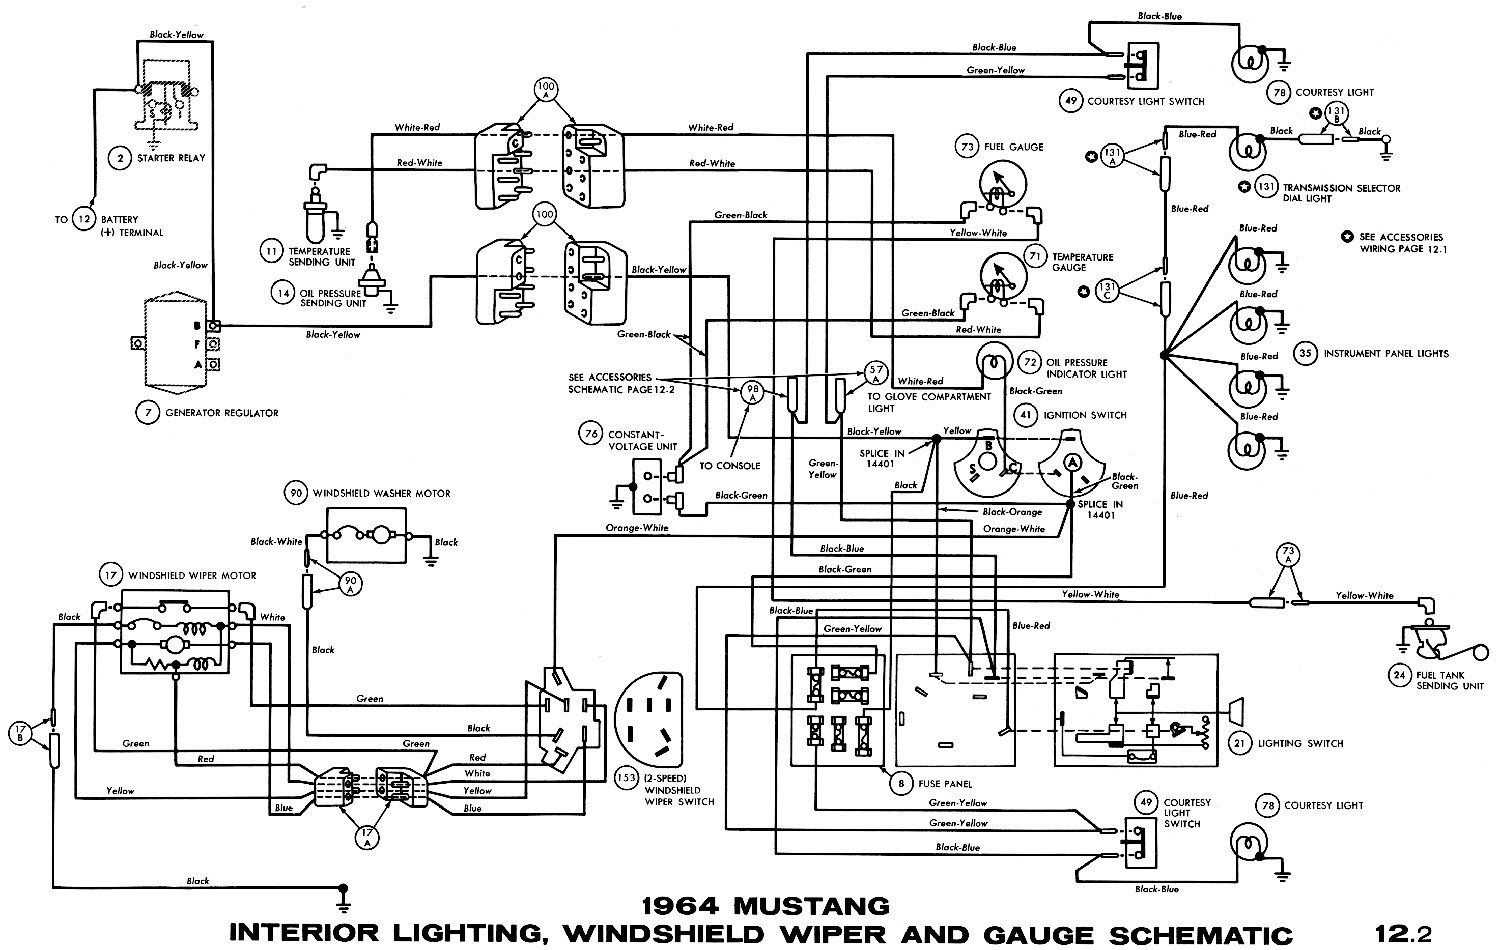 1970 Ford Mustang Ignition Switch Wiring Diagram 05 Buick Lesabre Wiring Diagram Hondaa Accordd Ab18 Jeanjaures37 Fr